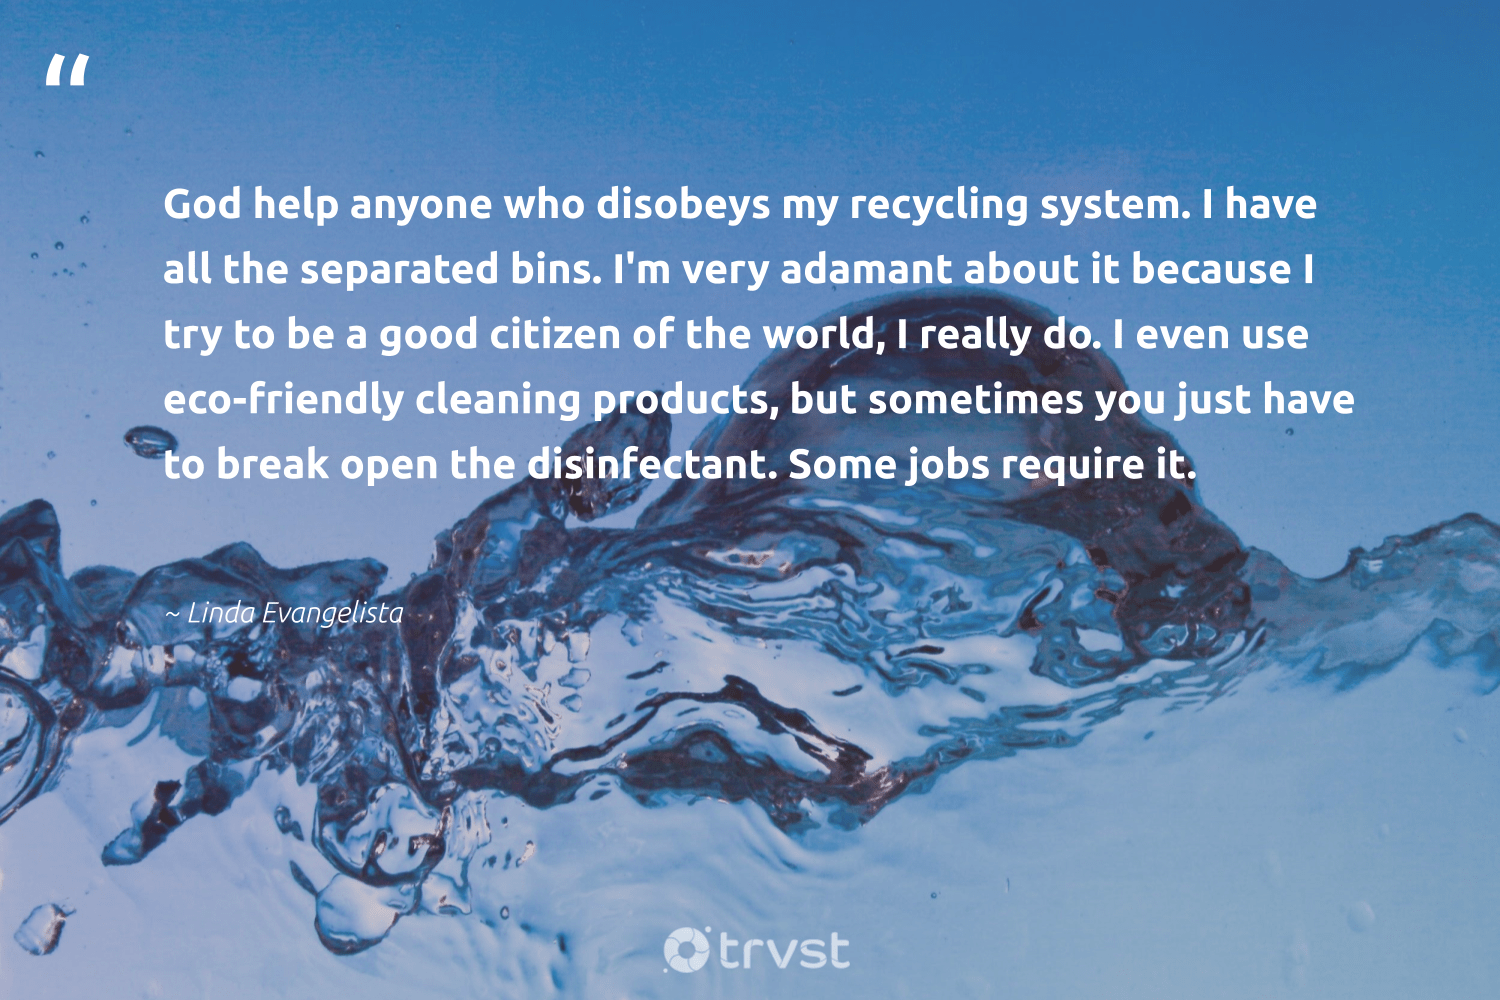 """""""God help anyone who disobeys my recycling system. I have all the separated bins. I'm very adamant about it because I try to be a good citizen of the world, I really do. I even use eco-friendly cleaning products, but sometimes you just have to break open the disinfectant. Some jobs require it.""""  - Linda Evangelista #trvst #quotes #recycling #ecofriendly #eco #recycled #noplanetb #ecoconscious #collectiveaction #refuse #earthdayeveryday #ecoactivism"""